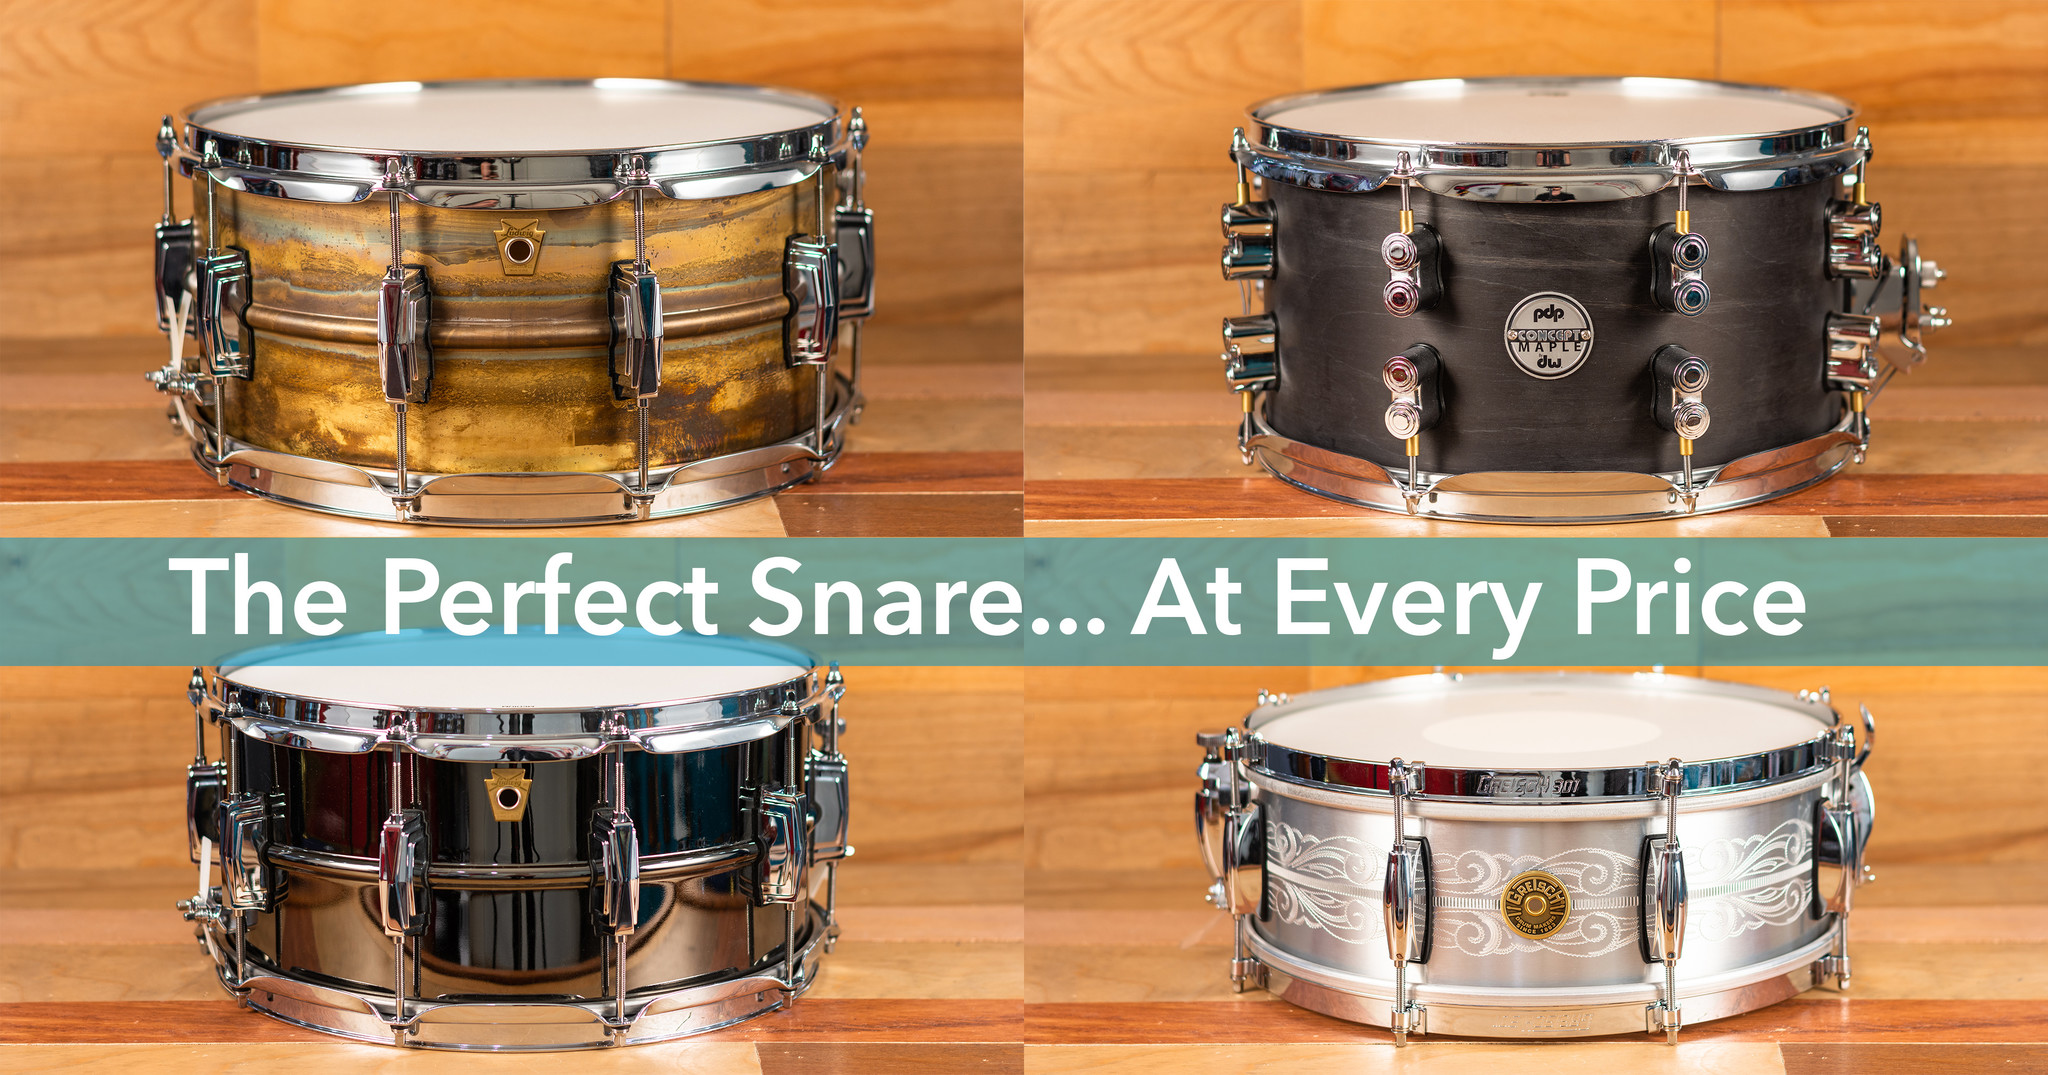 The Perfect Snare...at Every Price!